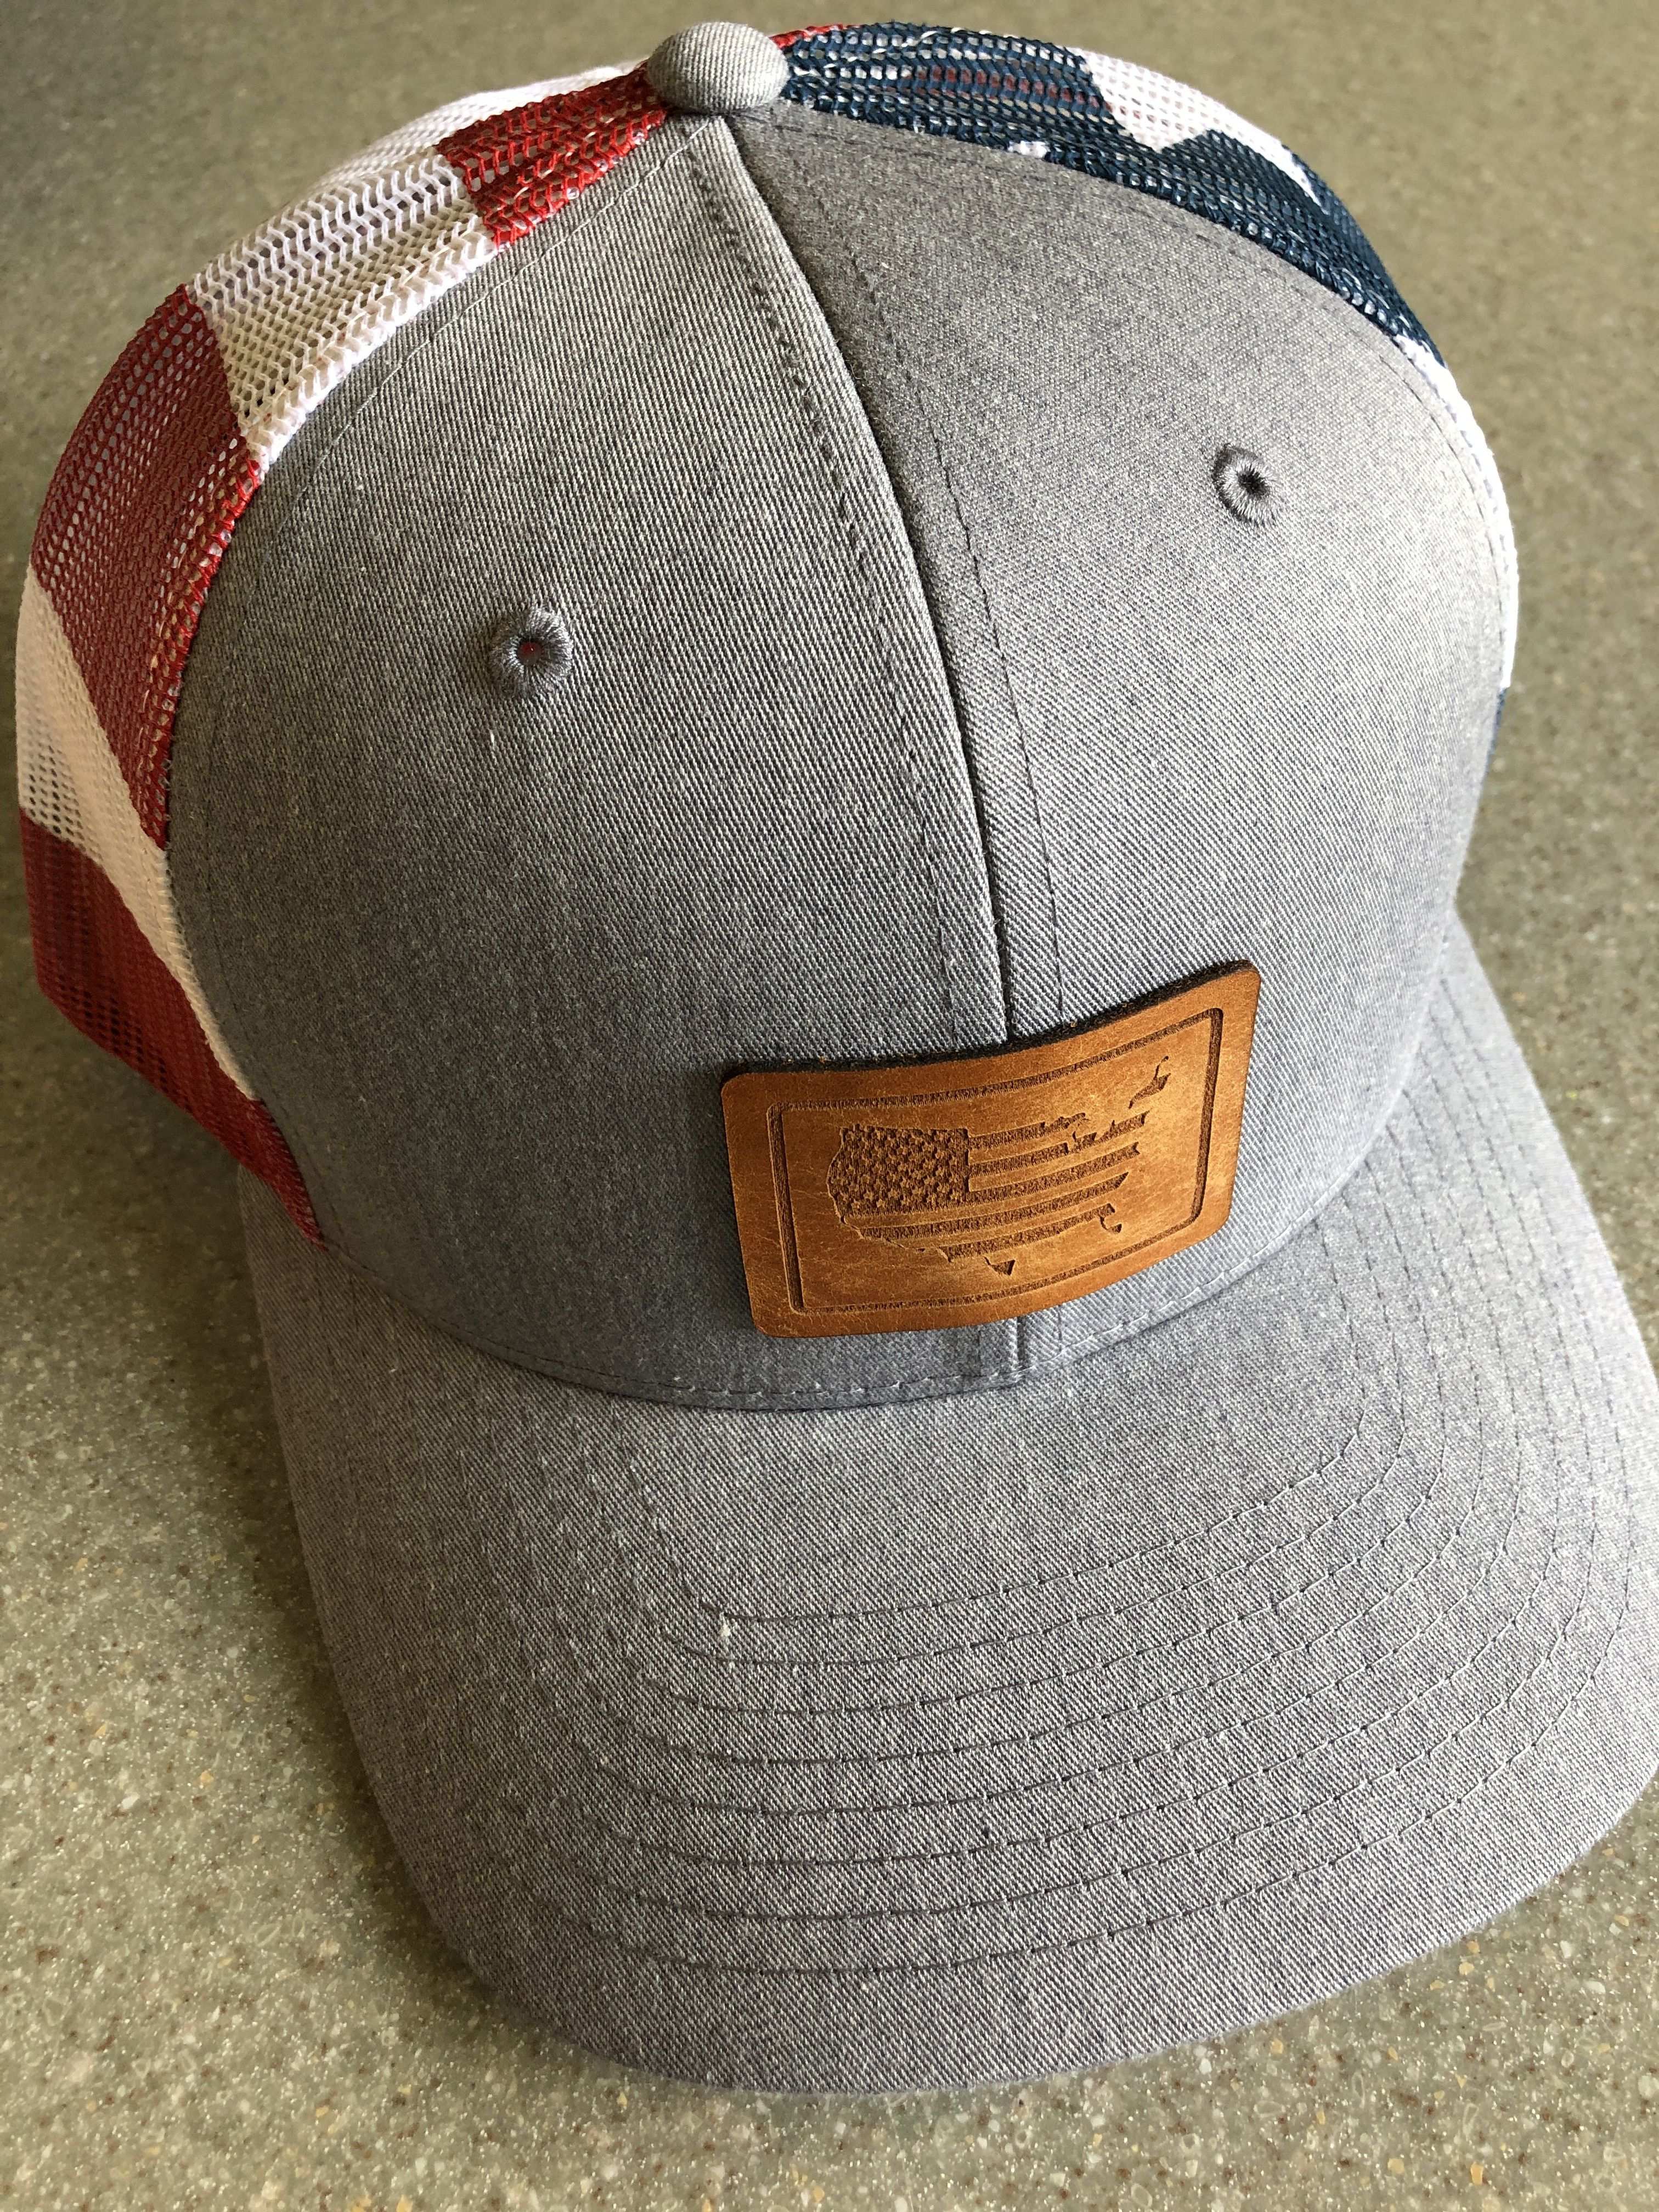 Usa Flag Hat Usa Pride American Made Memorial Day Hat July 4th Hat Cowgirl Accessories Leather Patches Country Hats